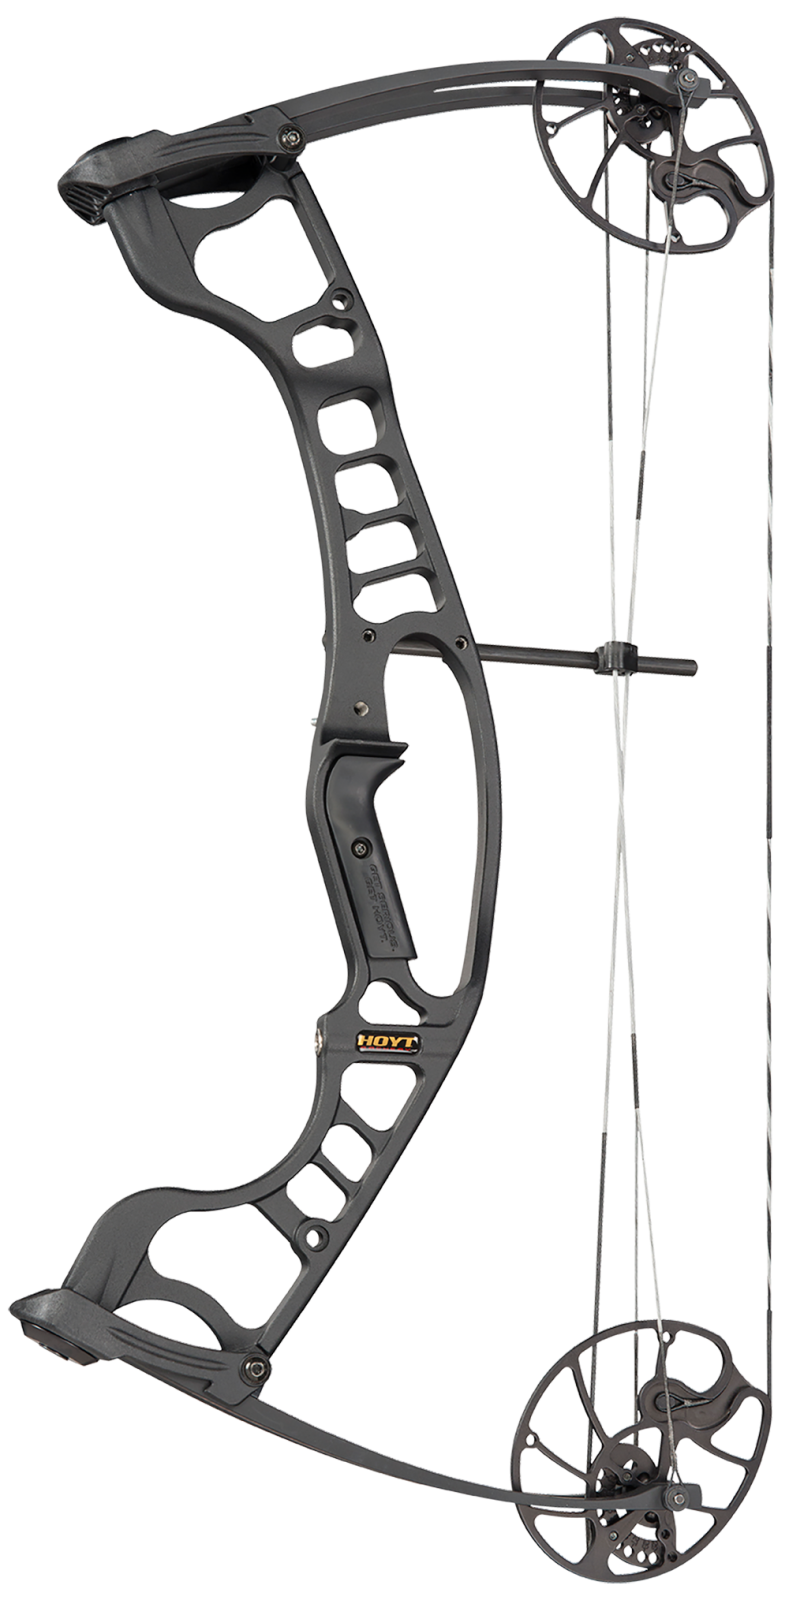 image black and white library Hoyt ignite compounf compound. Archery bow clipart